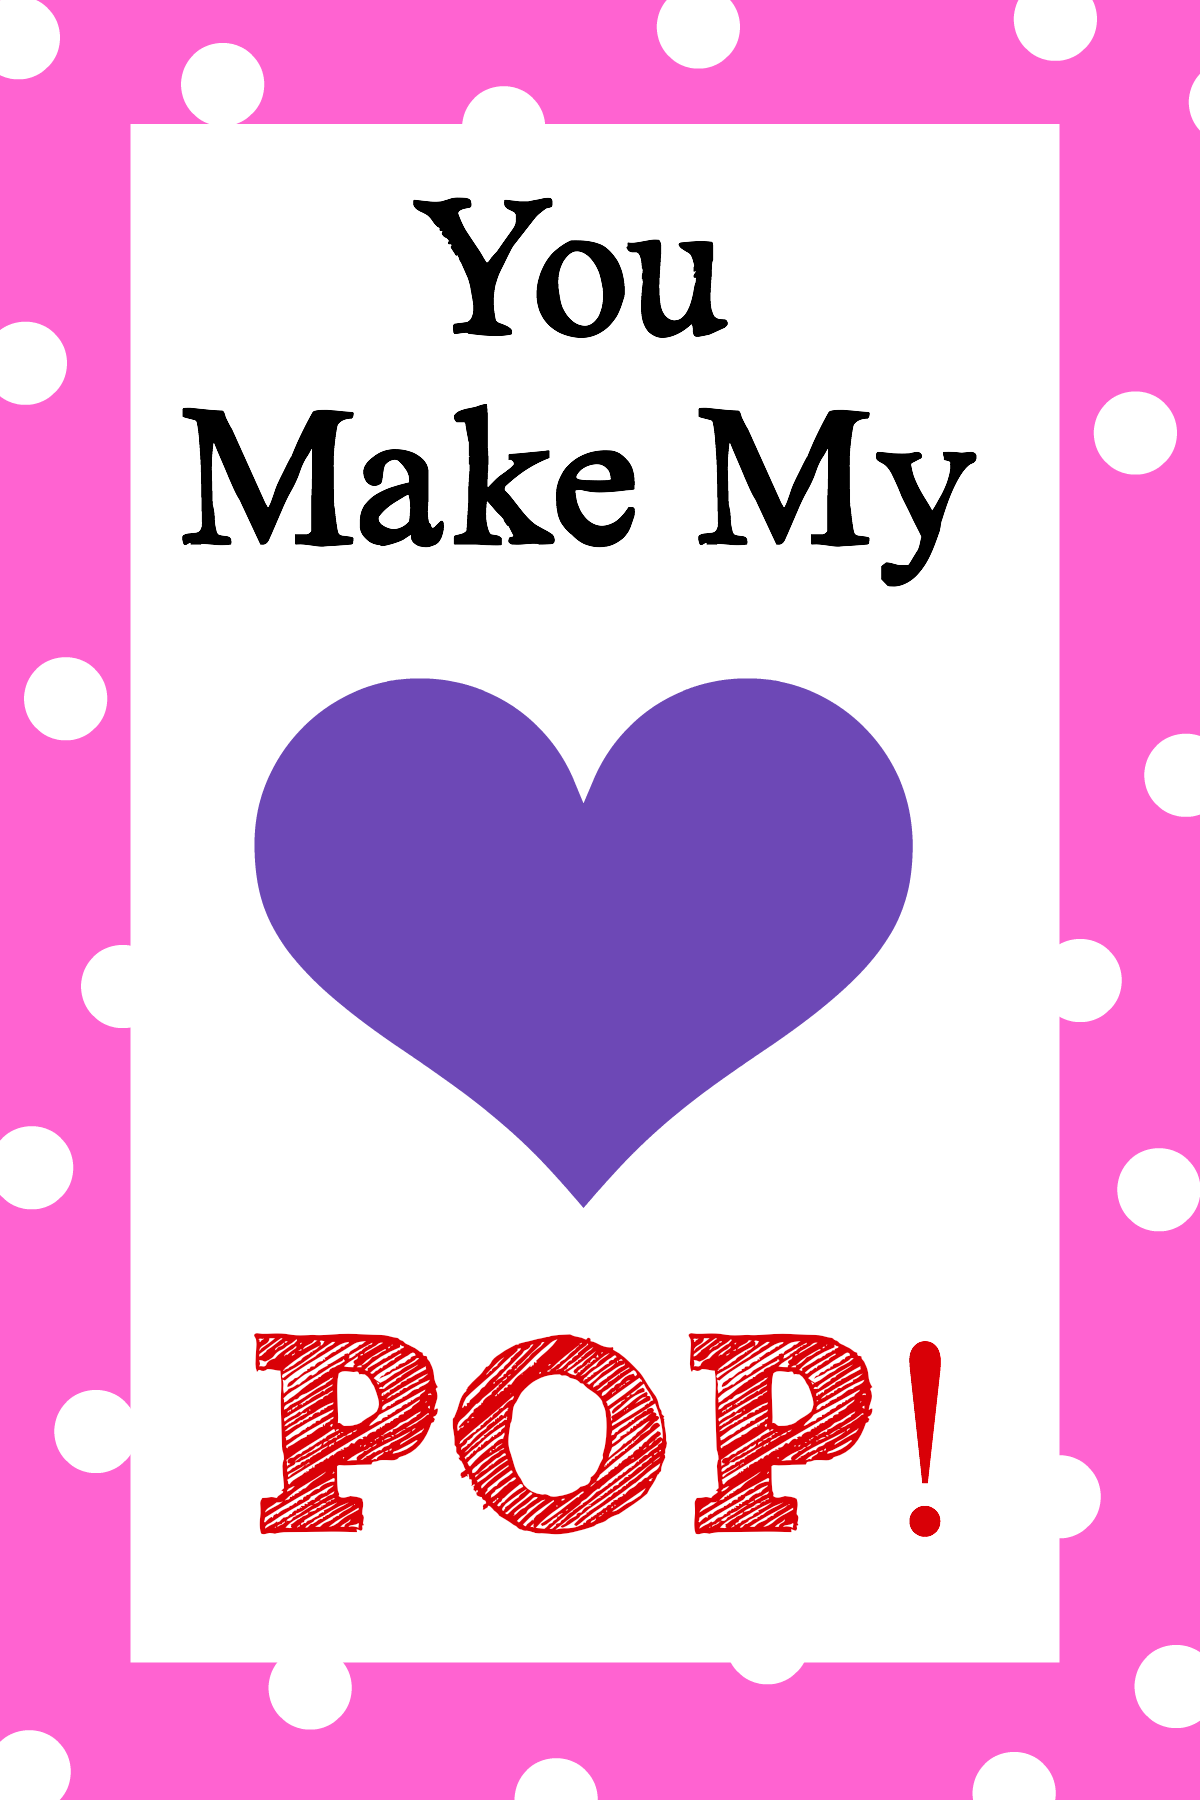 image relating to Popcorn Valentine Printable called Yourself Deliver My Middle Pop! Valentines Thought - Nuts Very little Initiatives